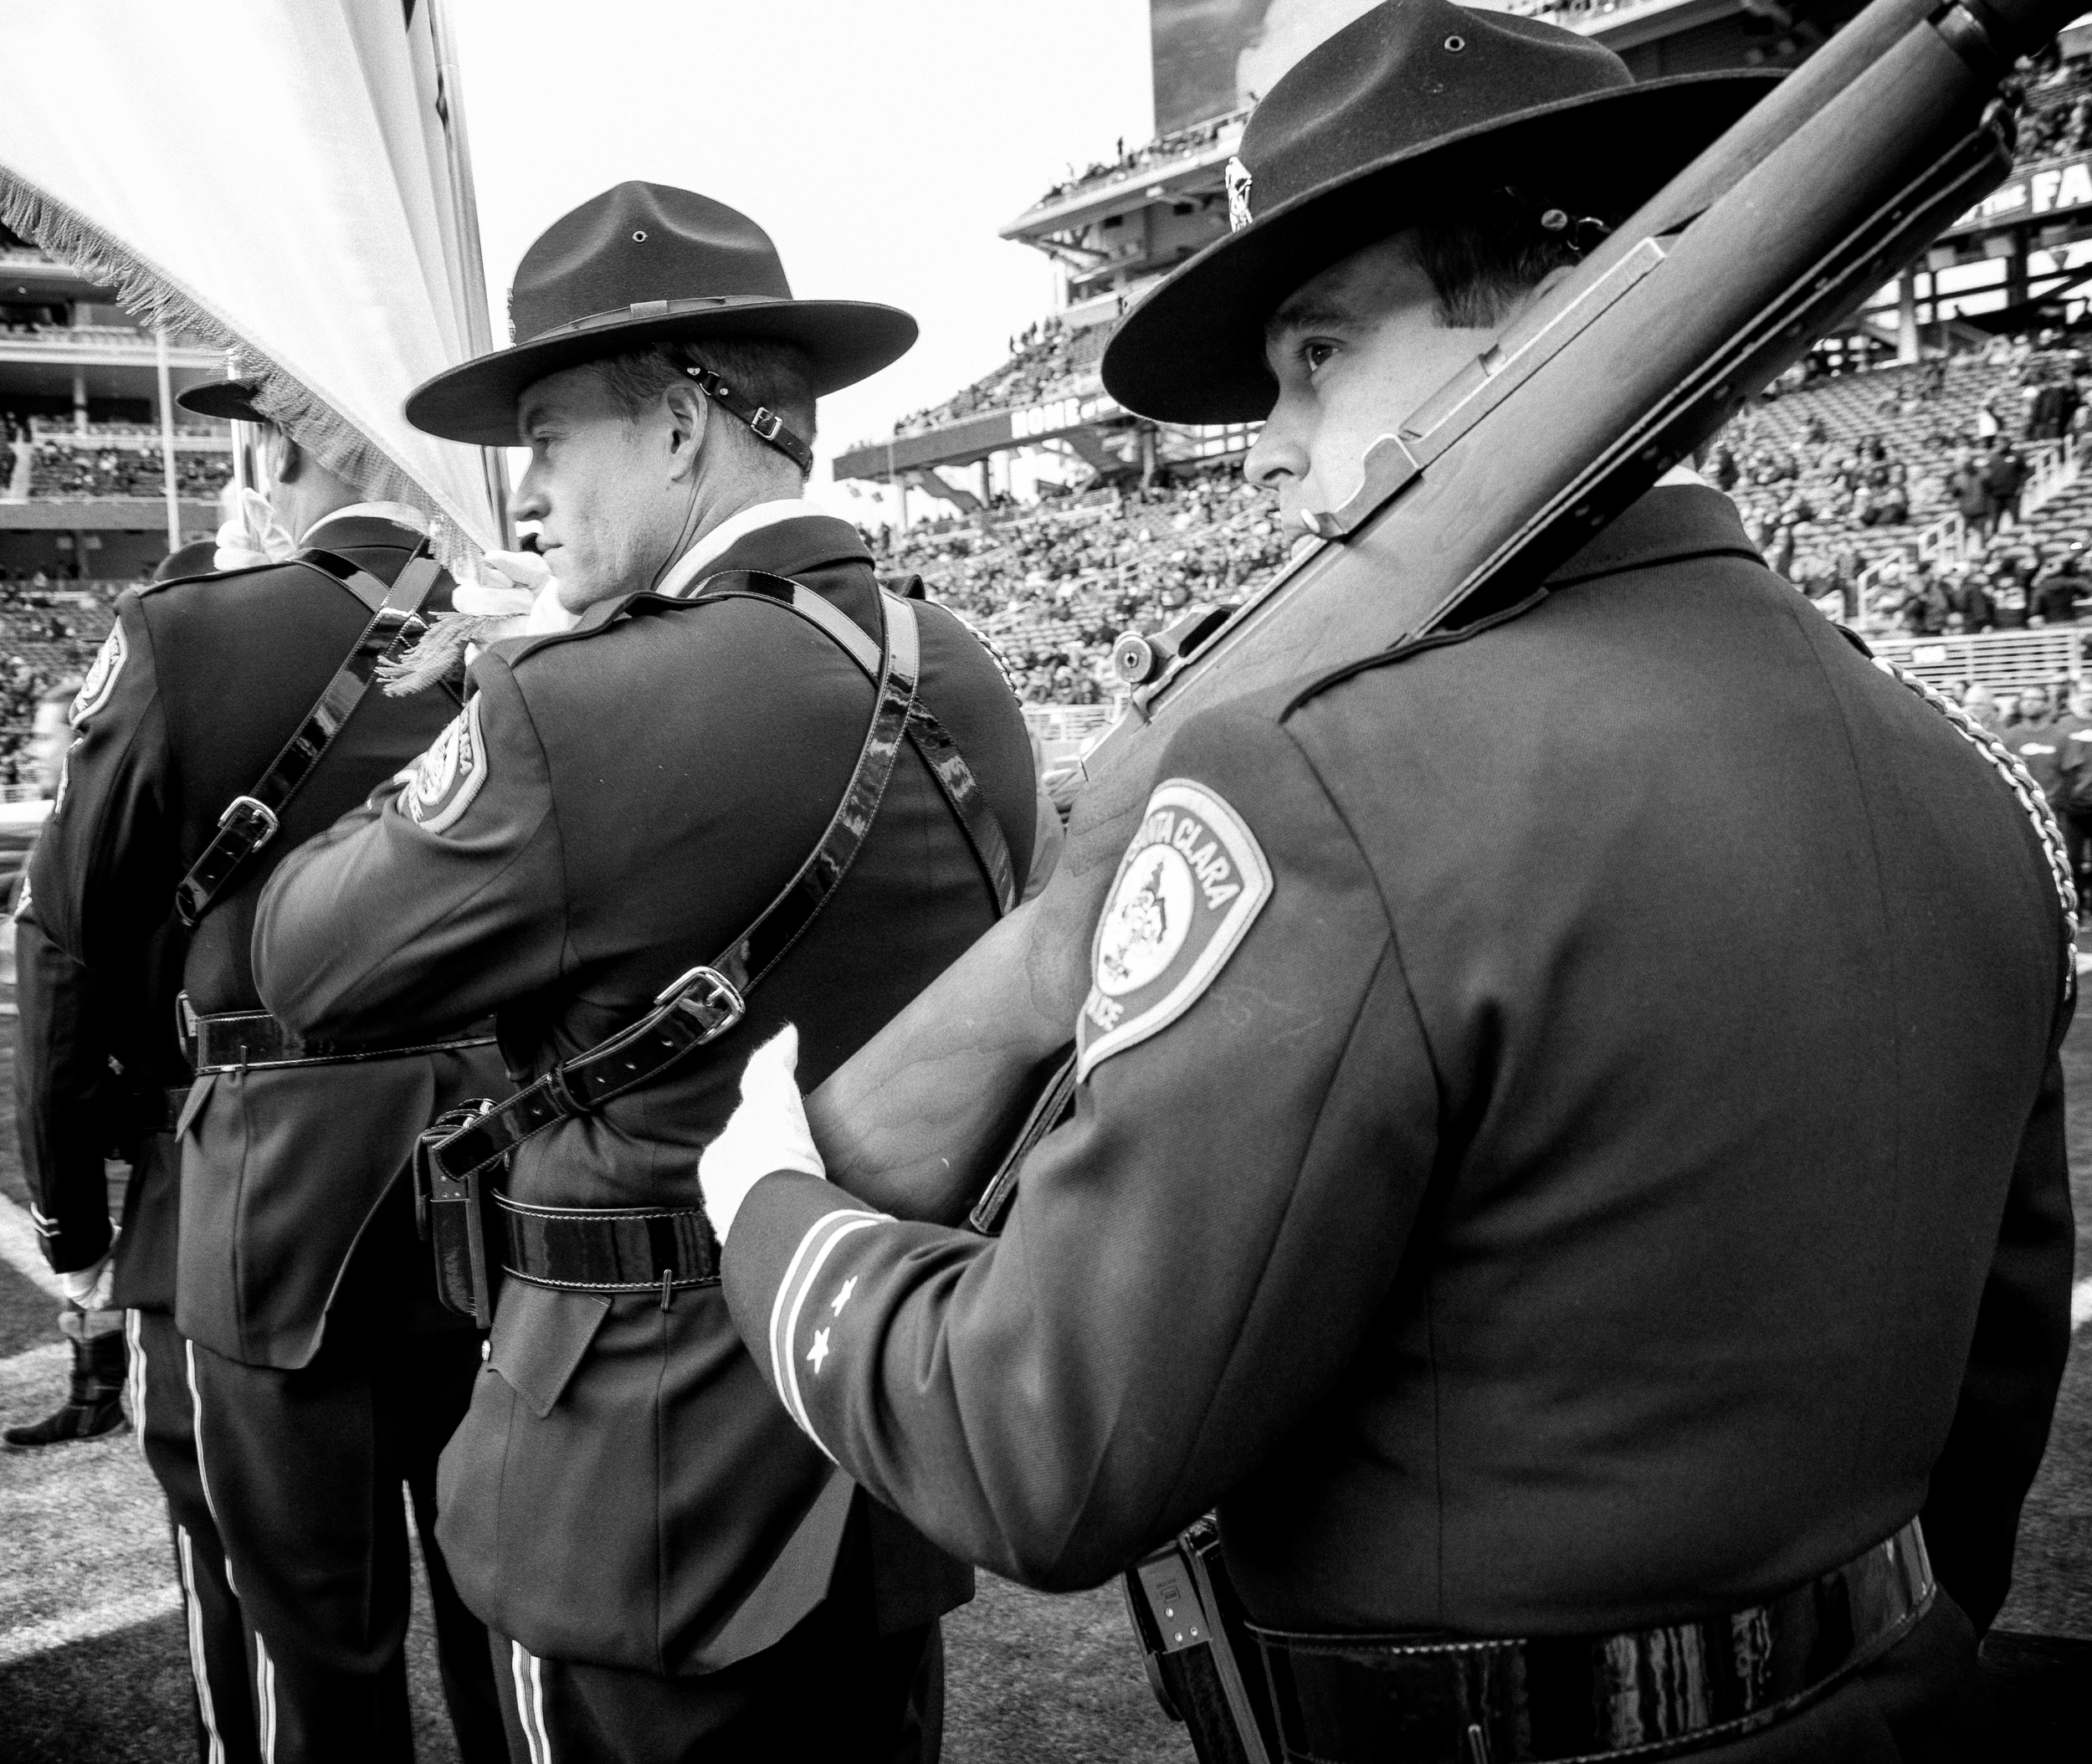 SCPD_honor guard_stadium-1.jpg